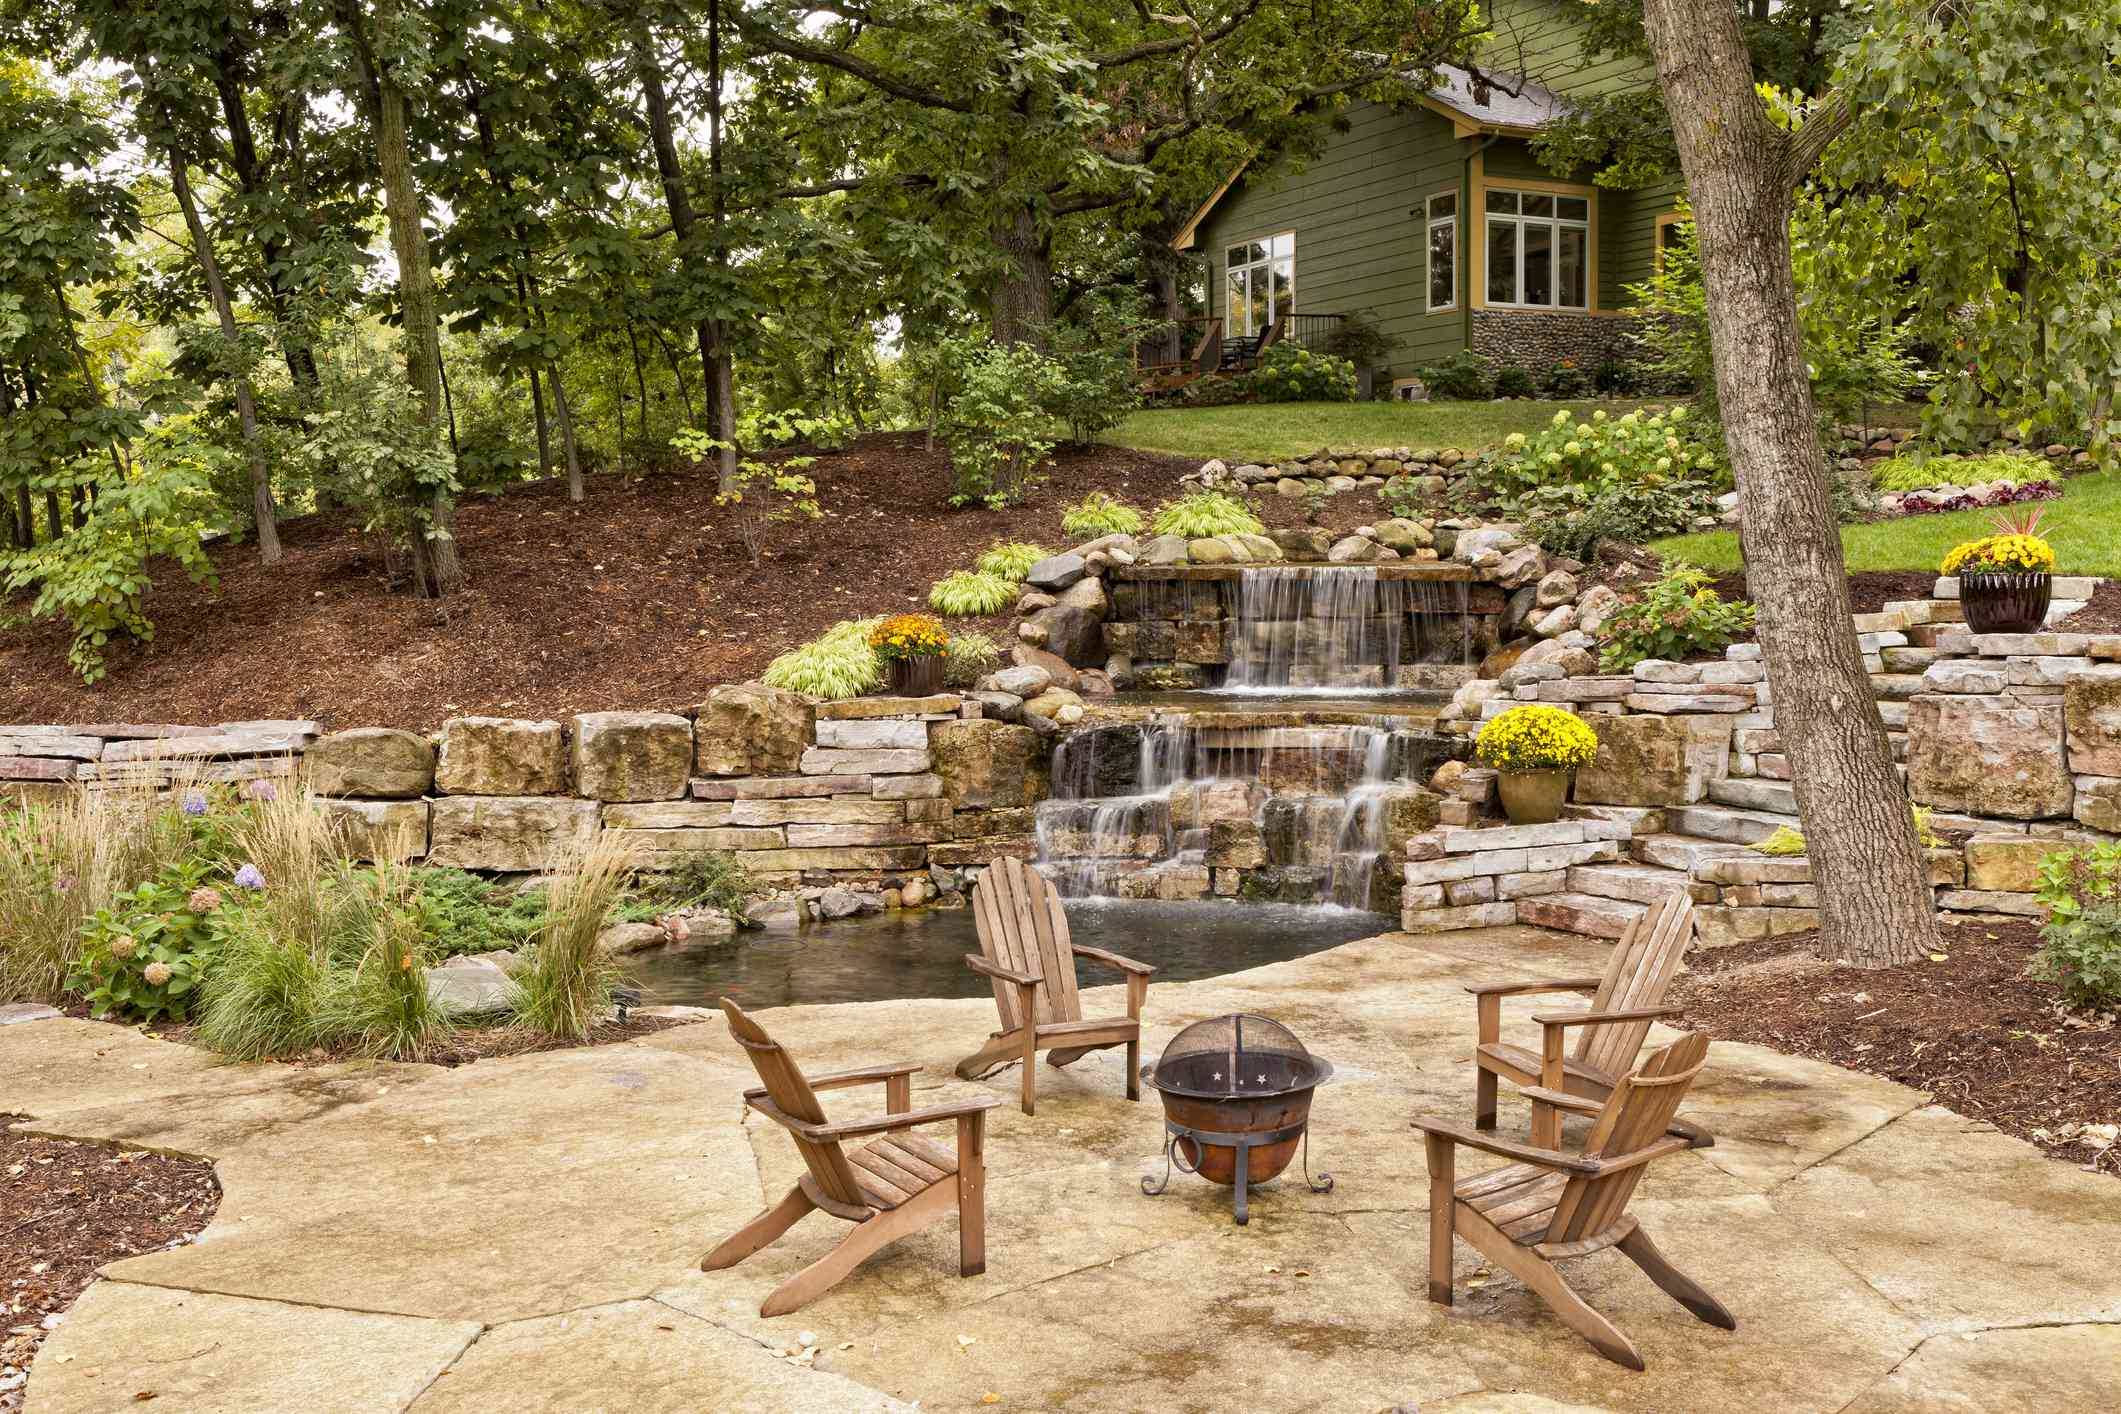 Four chairs around a fire pit next to a koi pond with waterfalls.